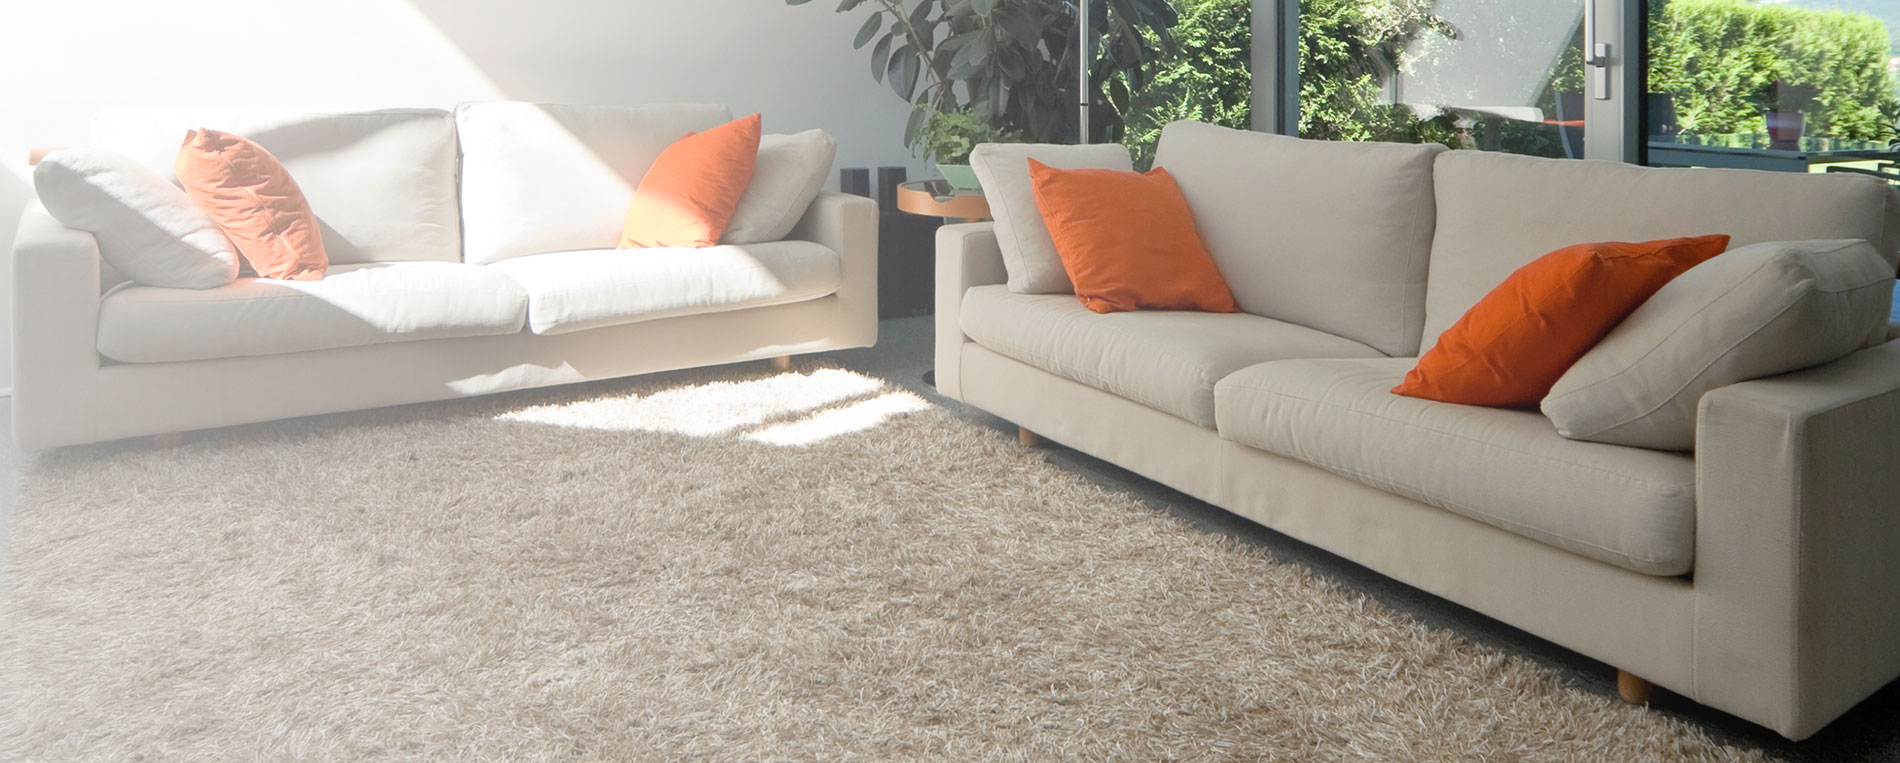 Why Preventing Carpet Stains May be Easier than Curing Them